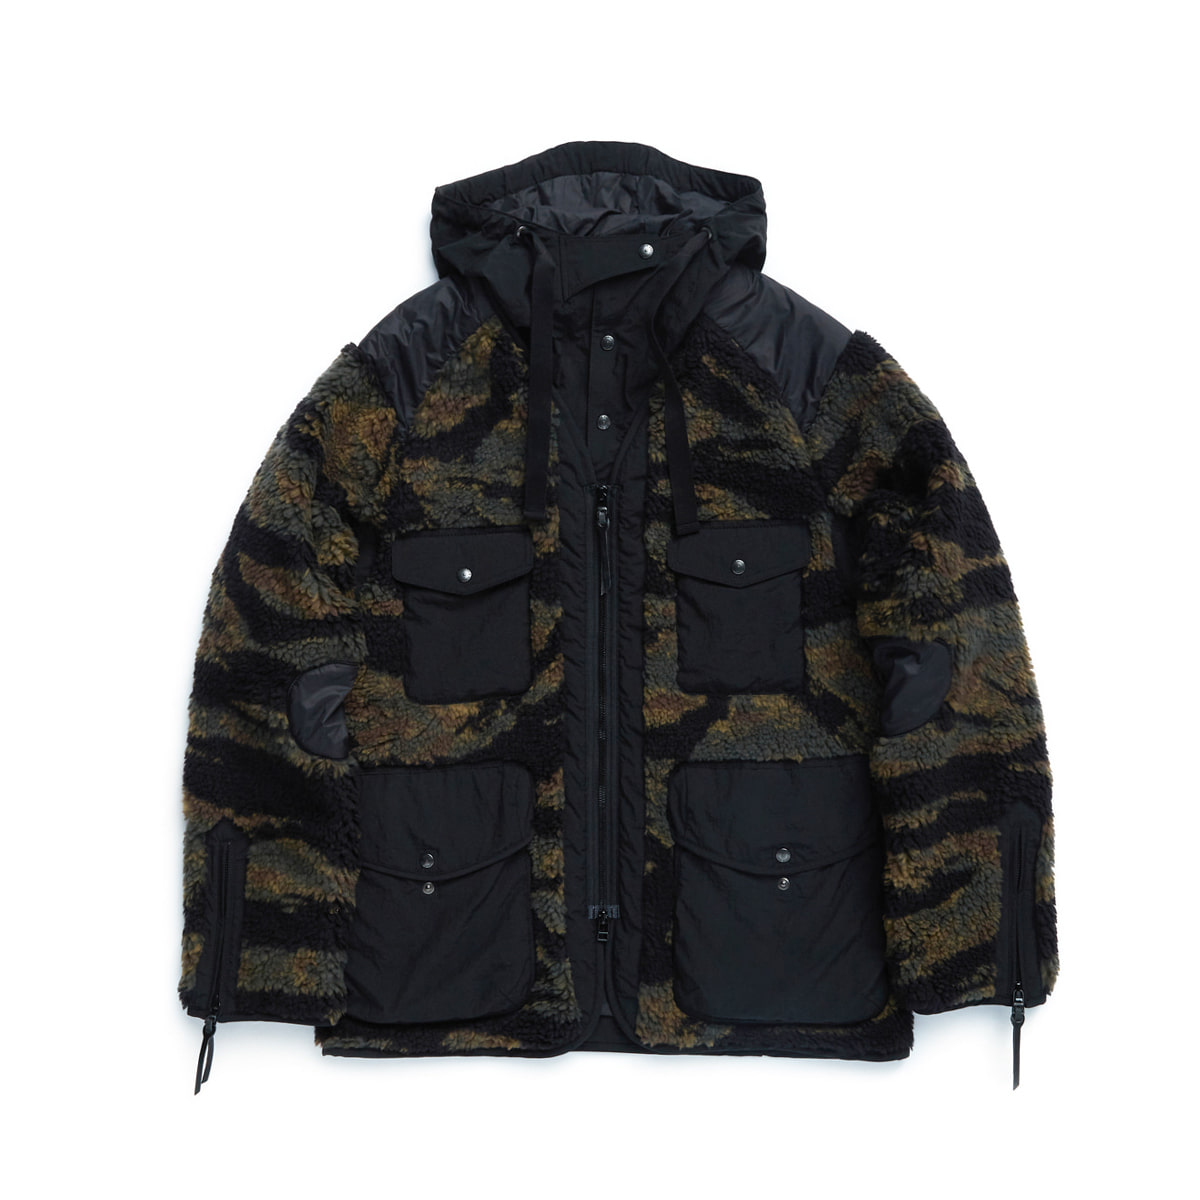 [EASTLOGUE] TRAVELER JACKET 'TIGER CAMO FLEECE'